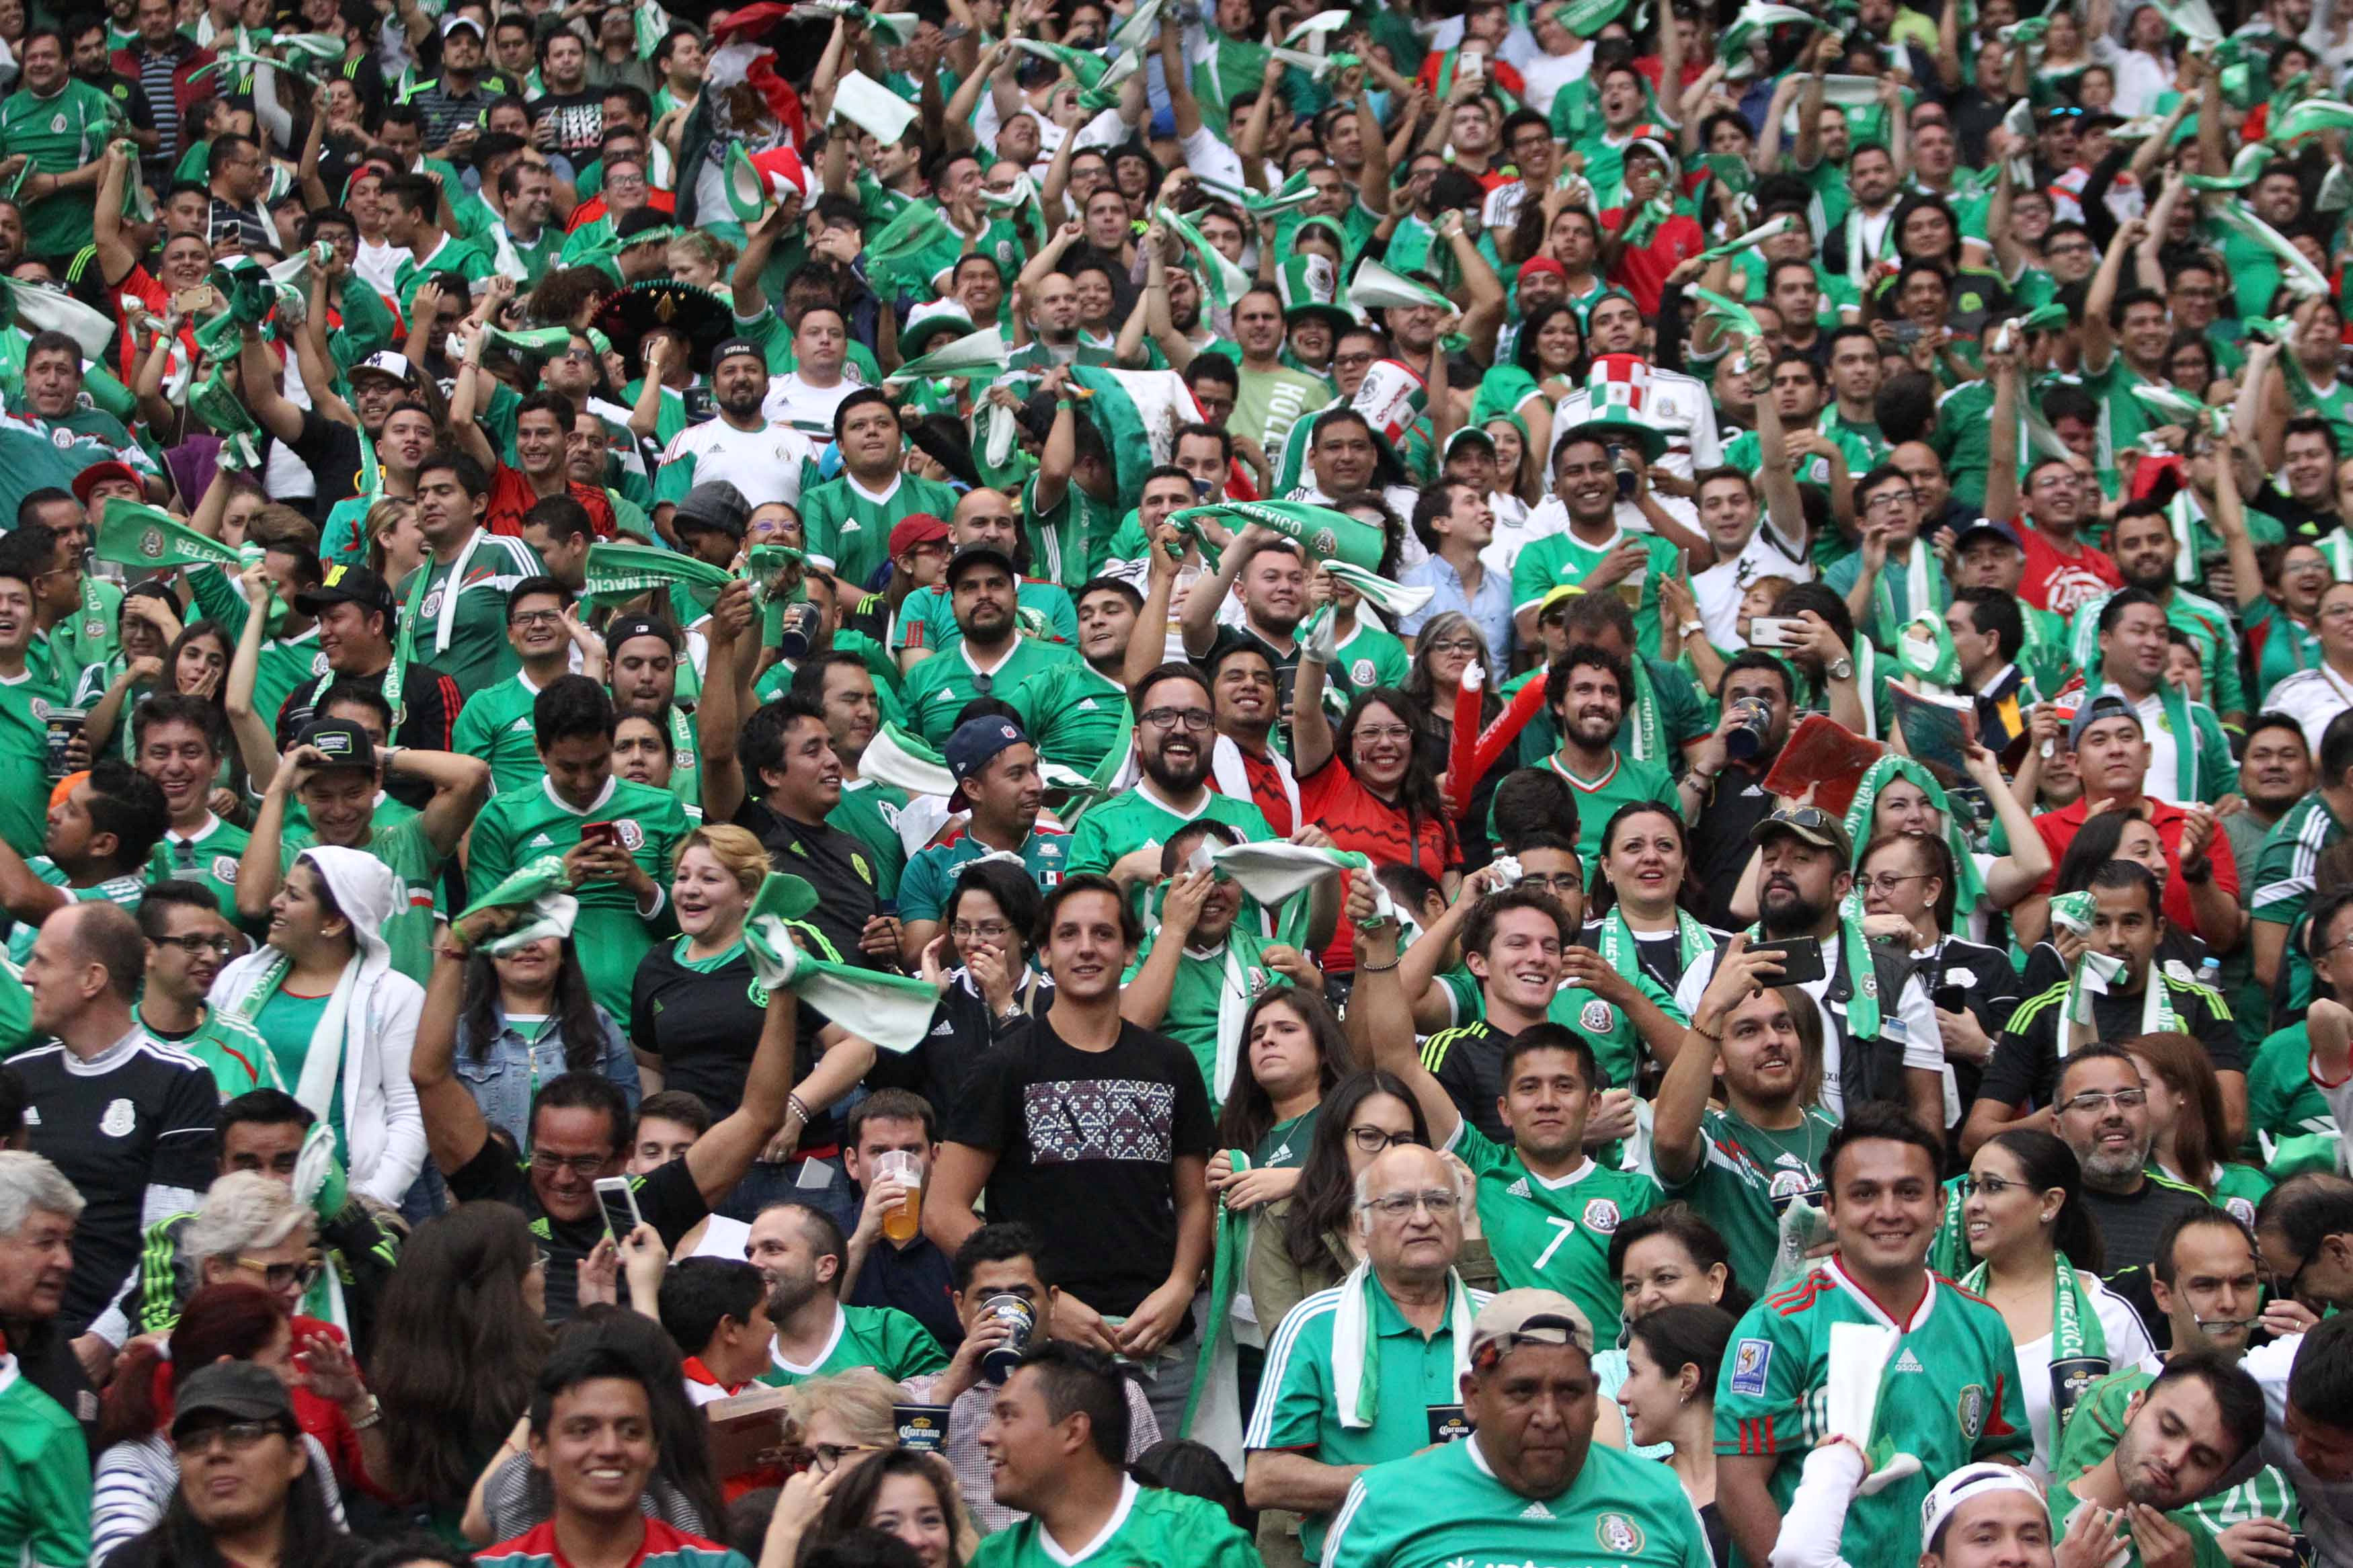 2017-06-12T011715Z_1595960106_RC16E881F600_RTRMADP_3_SOCCER-WORLDCUP-MEX-USA